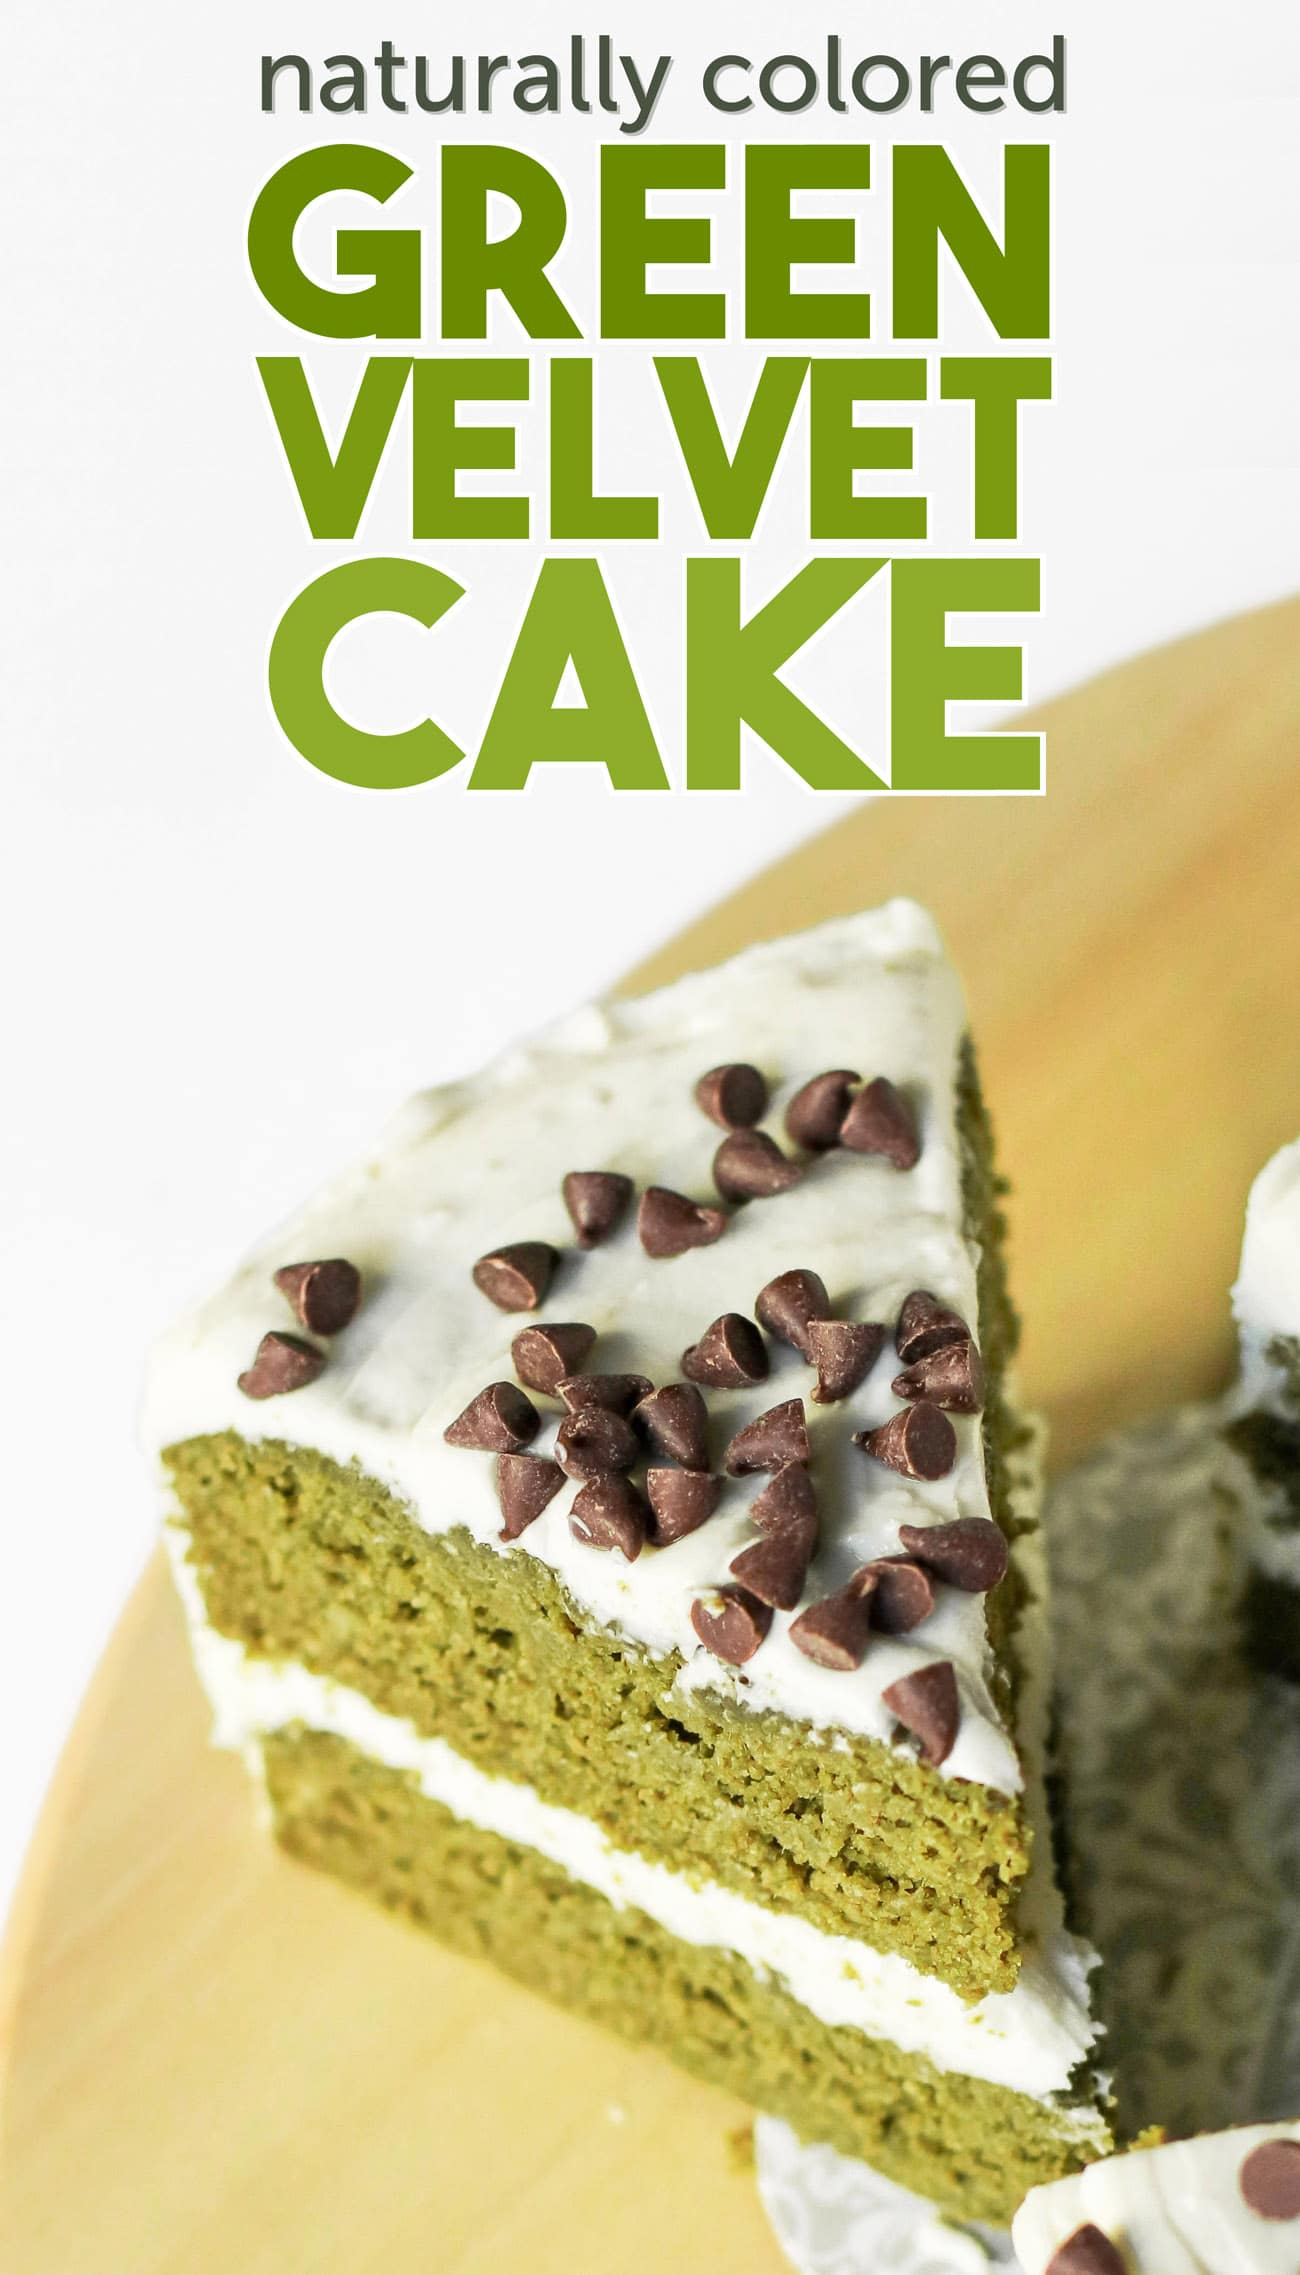 This Healthy Green Velvet Cake tastes exactly like Red Velvet Cake, only it's GREEN! It's super moist, flavorful, and delicious, you'd never know it's sugar free, low fat, high fiber, and gluten free too. It also happens to be the perfect green Saint Patrick's Day dessert!